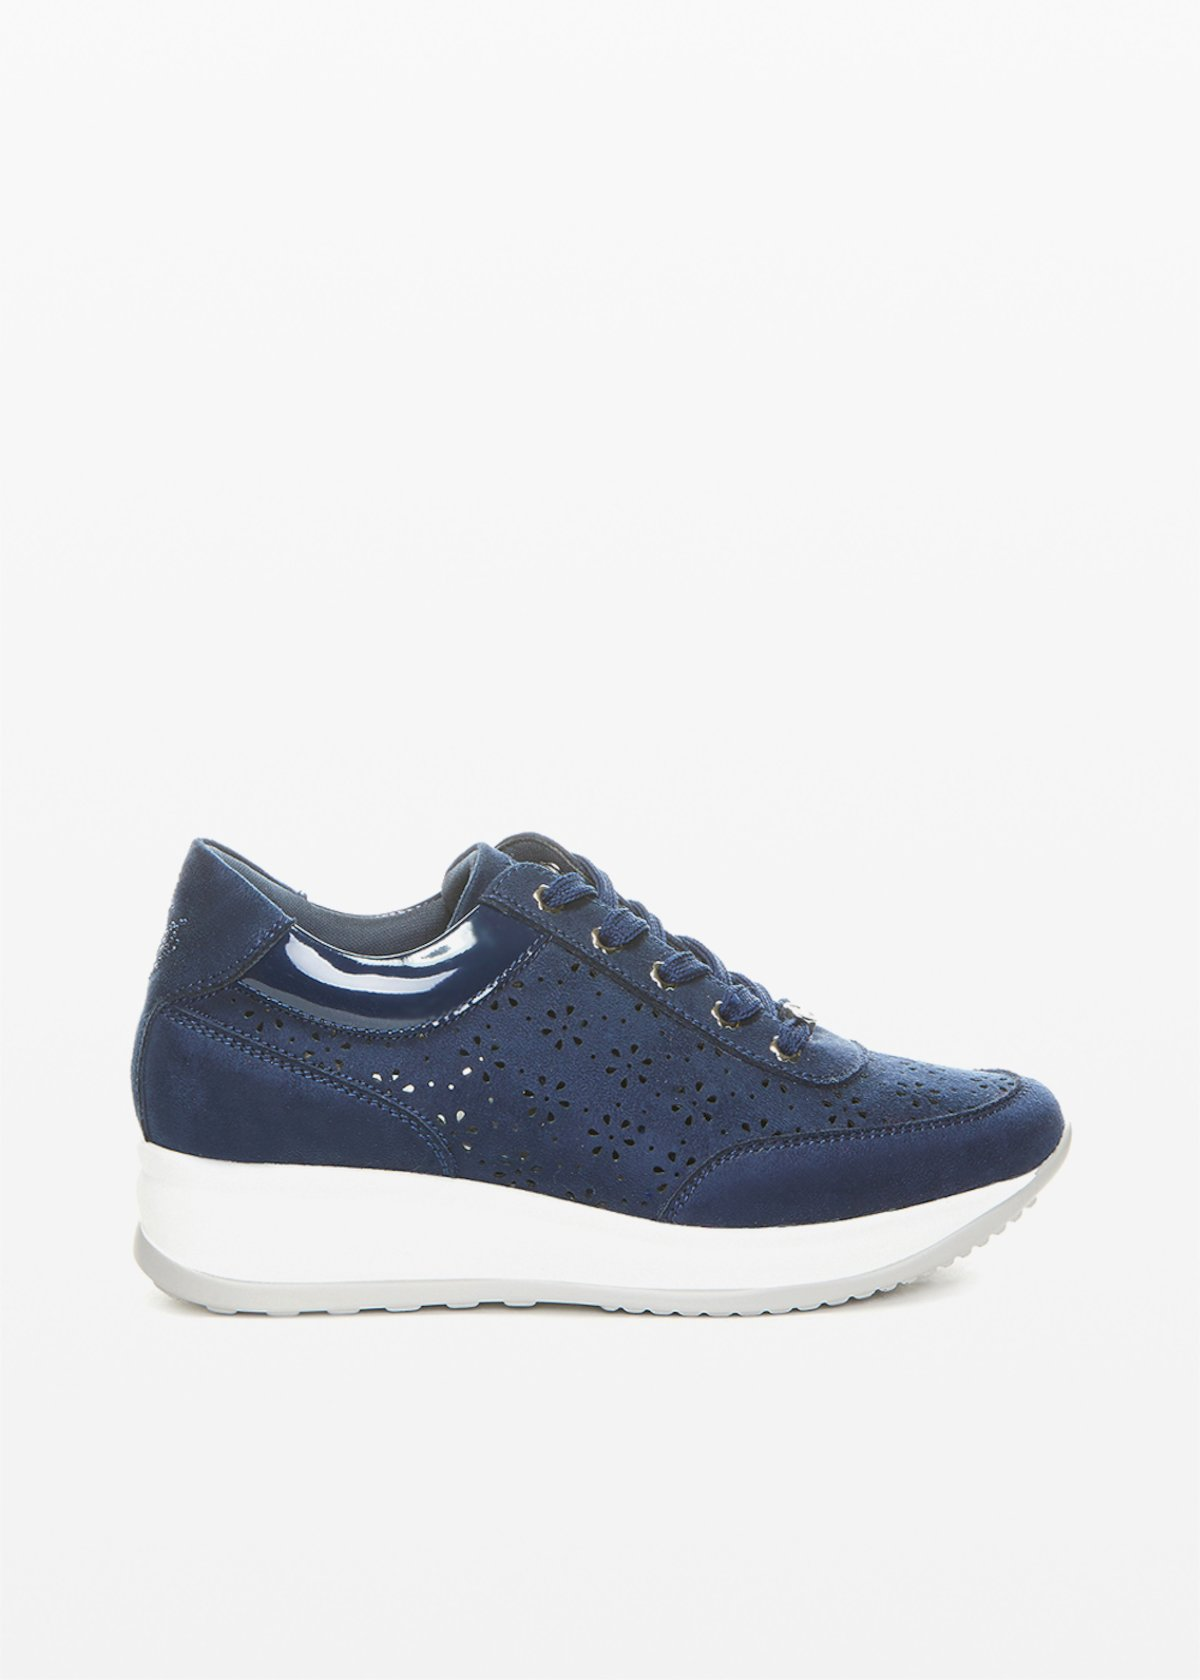 Faux suede Sindy sneakers with flower perforations - Dark Blue - Woman - Category image